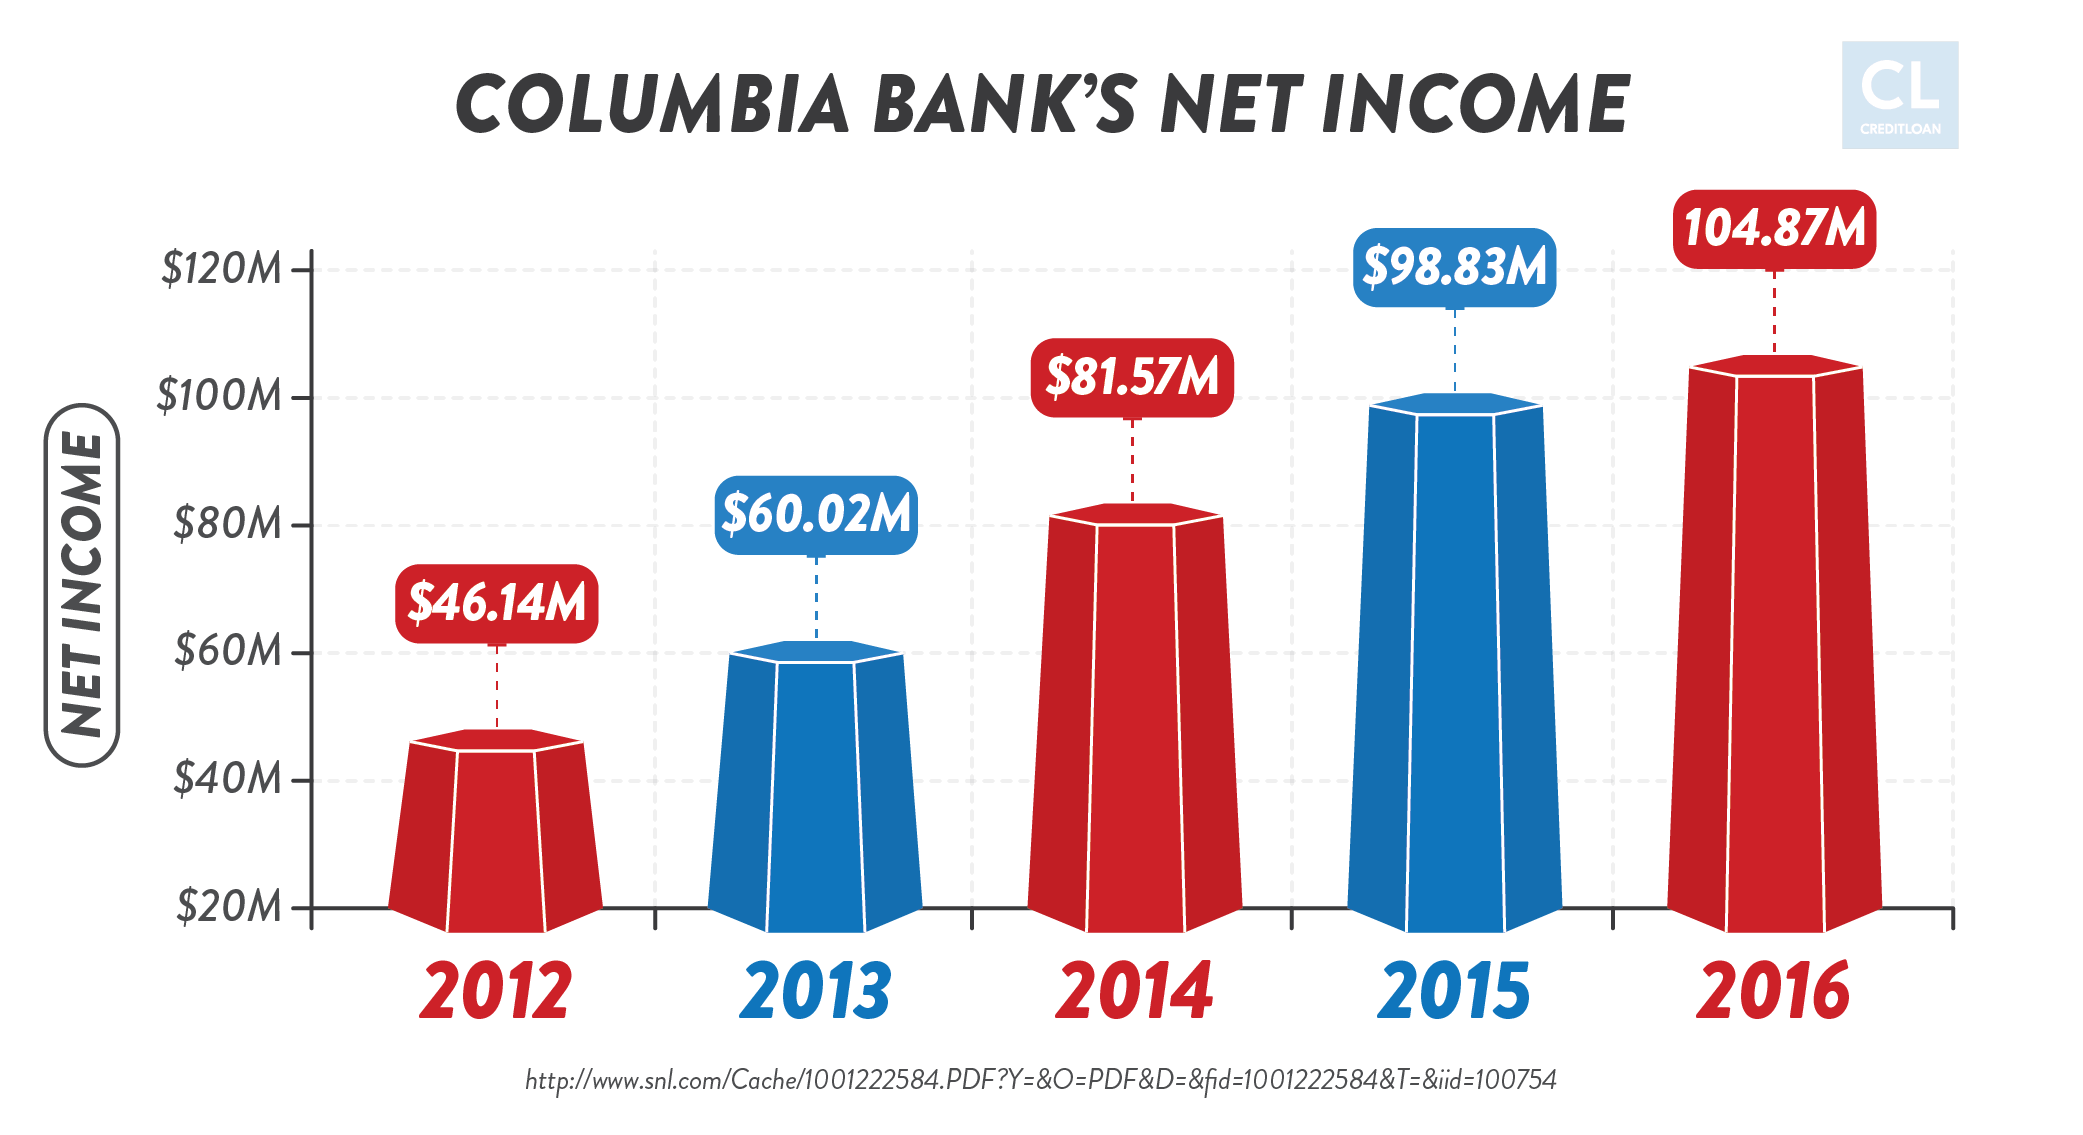 Columbia Bank's Net Income from 2012-2016